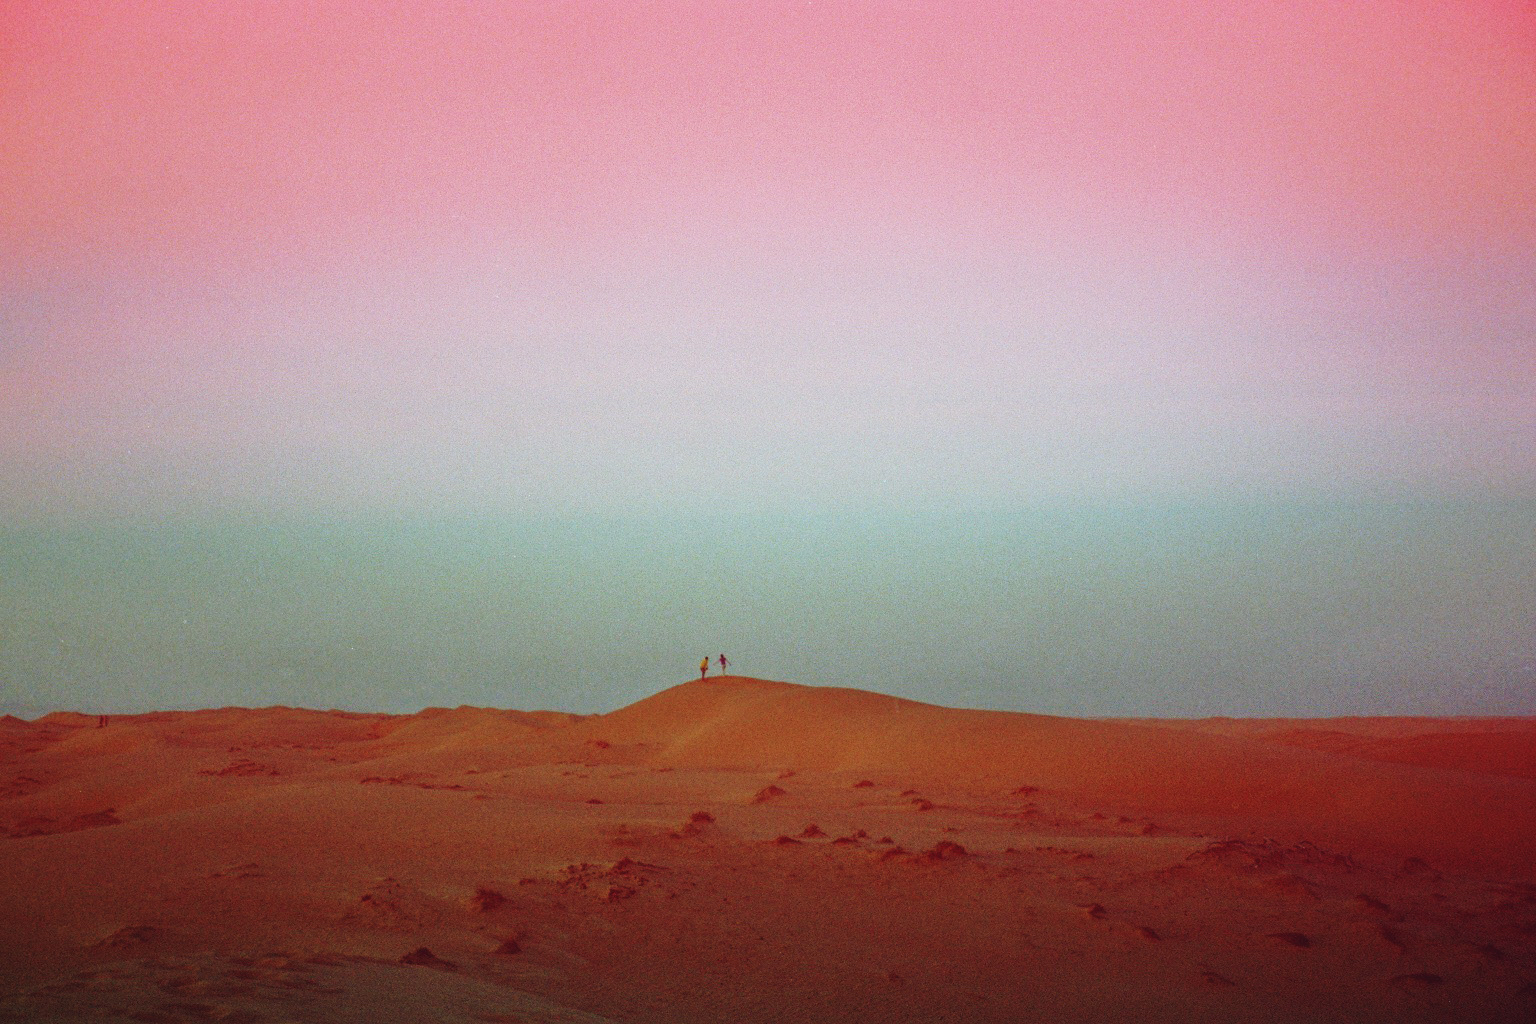 Two people walking in the distance of a desert in Oman.